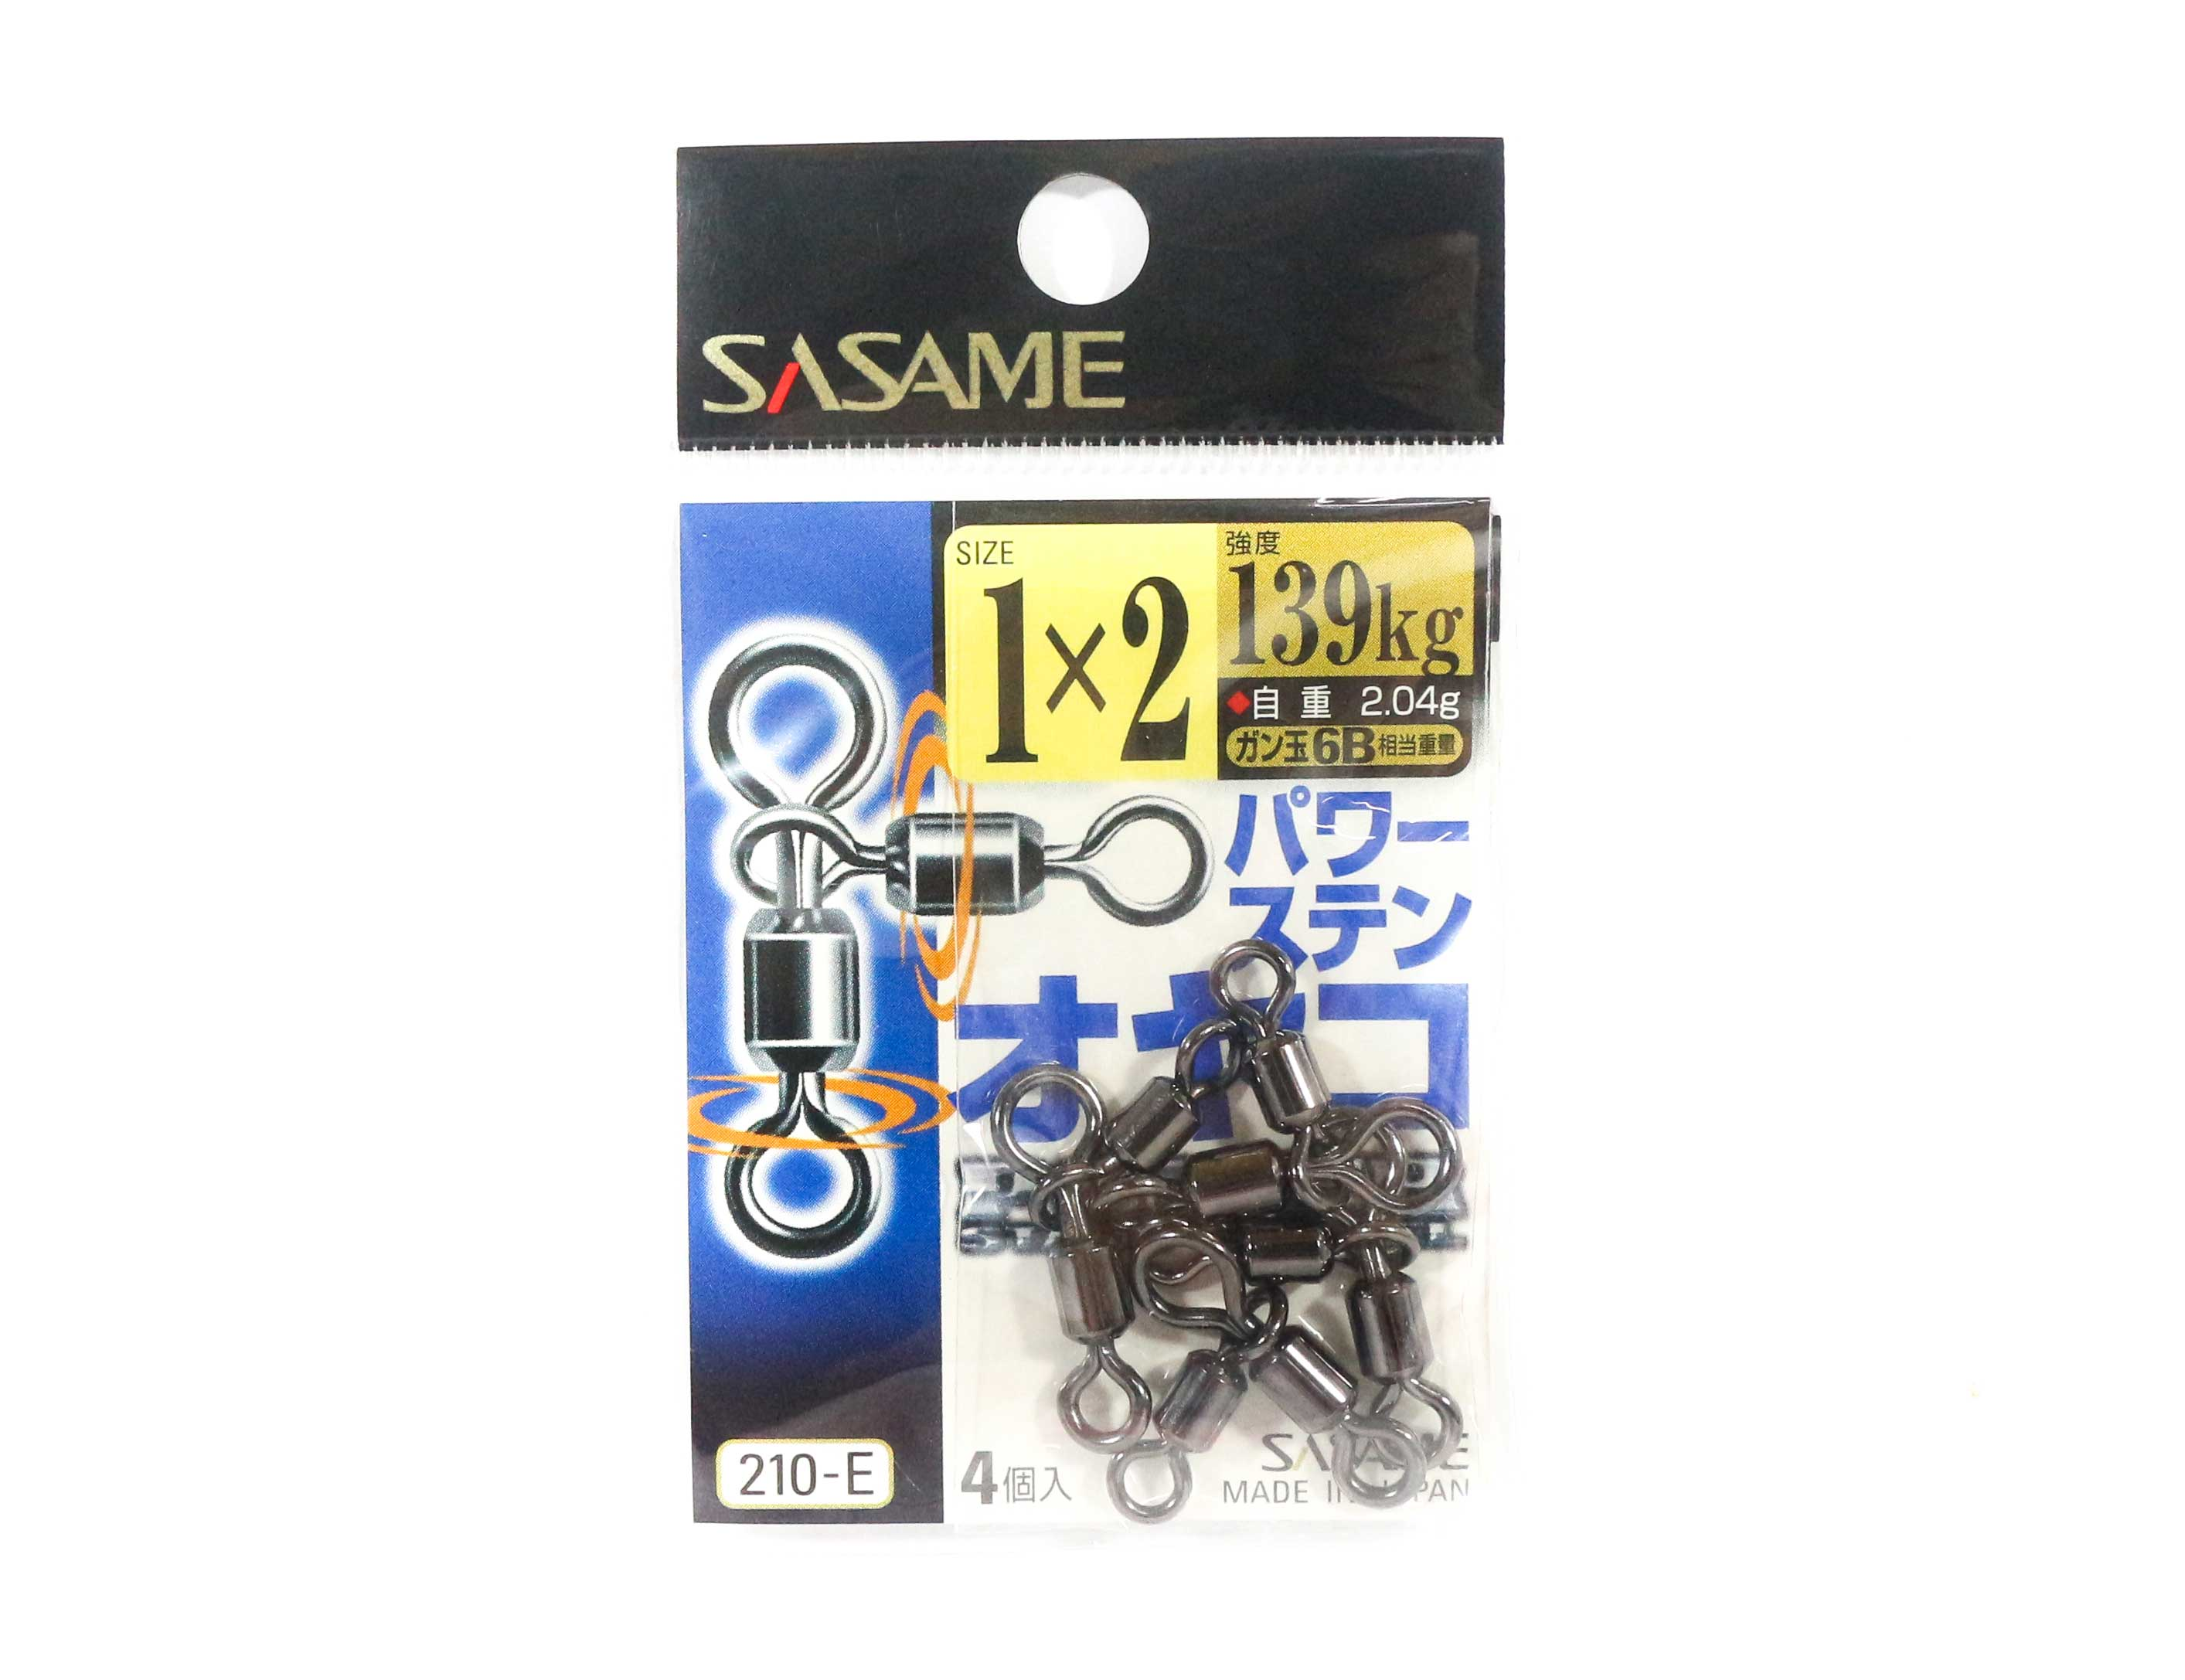 Sasame 210-E 3 Way Power Stain Swivel Black Size 1 x 2 (1461)